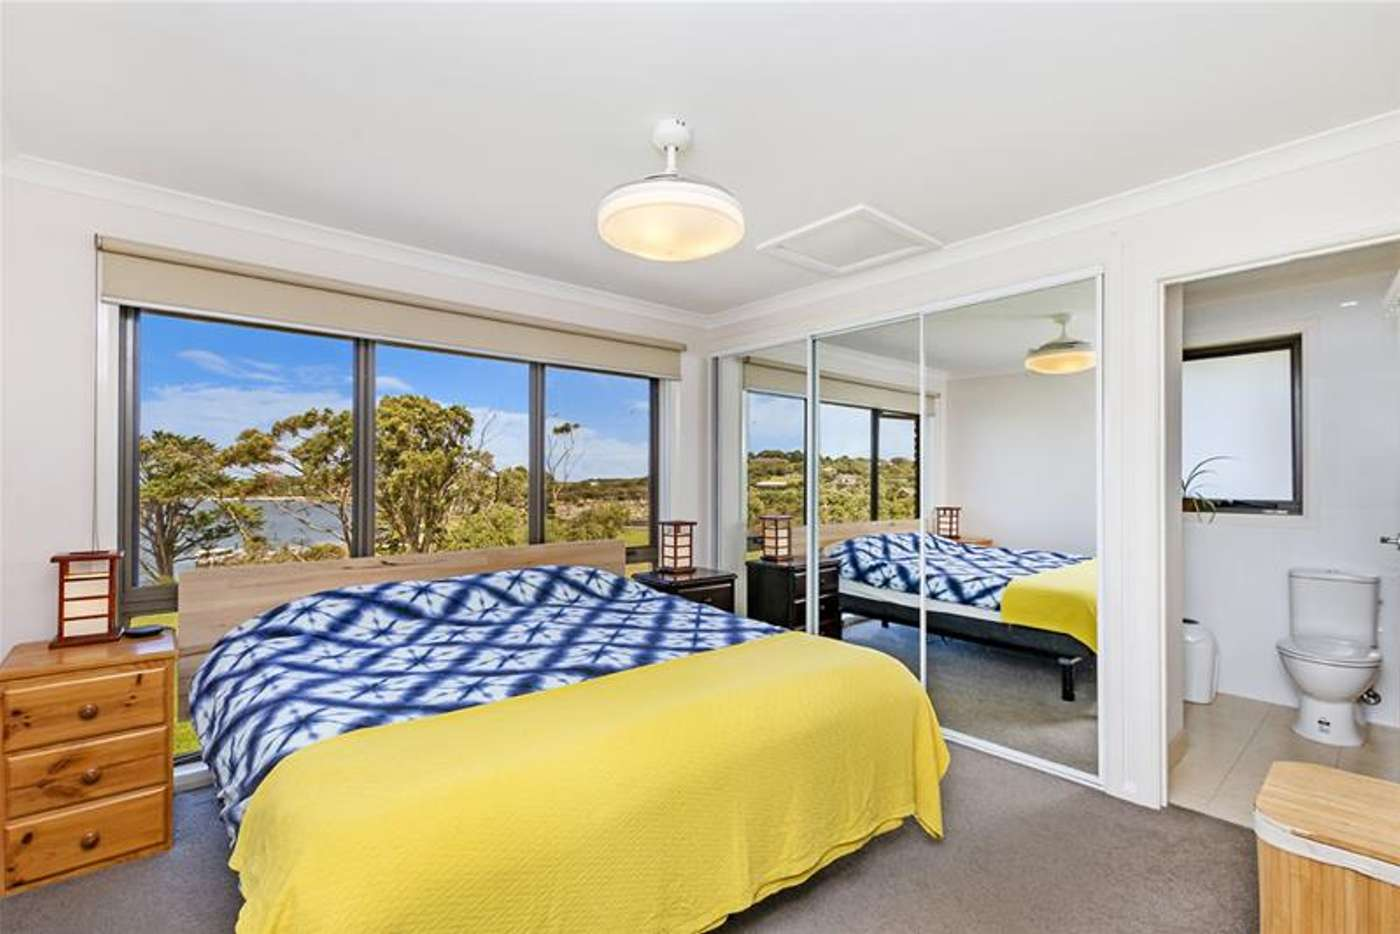 Fifth view of Homely house listing, Unit 2/4 Wicking Place, Warrnambool VIC 3280